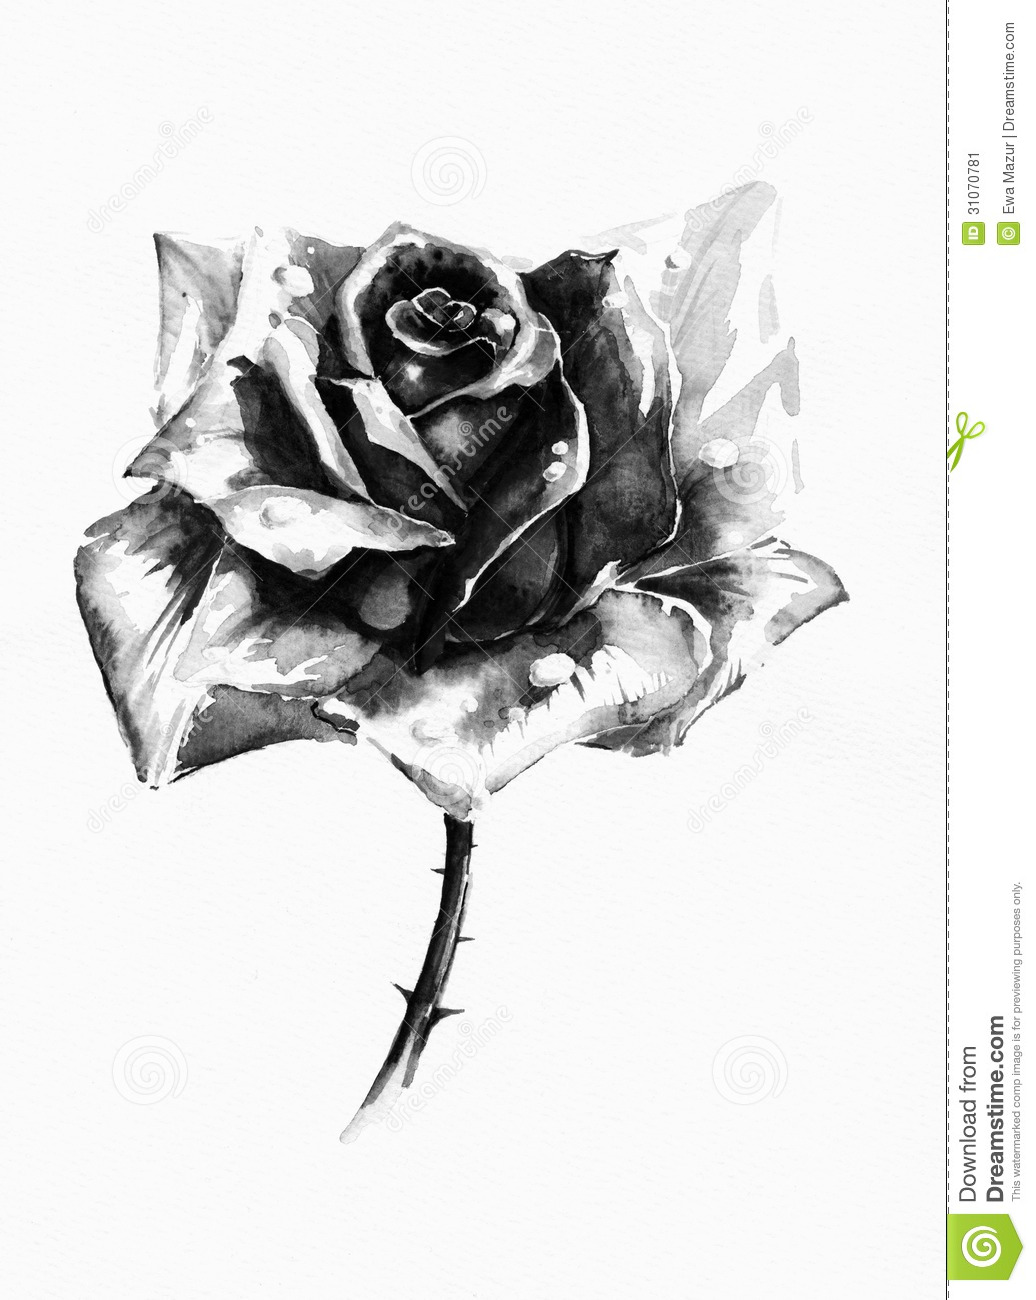 Black rose stock illustration. Image of copy, greeting ...